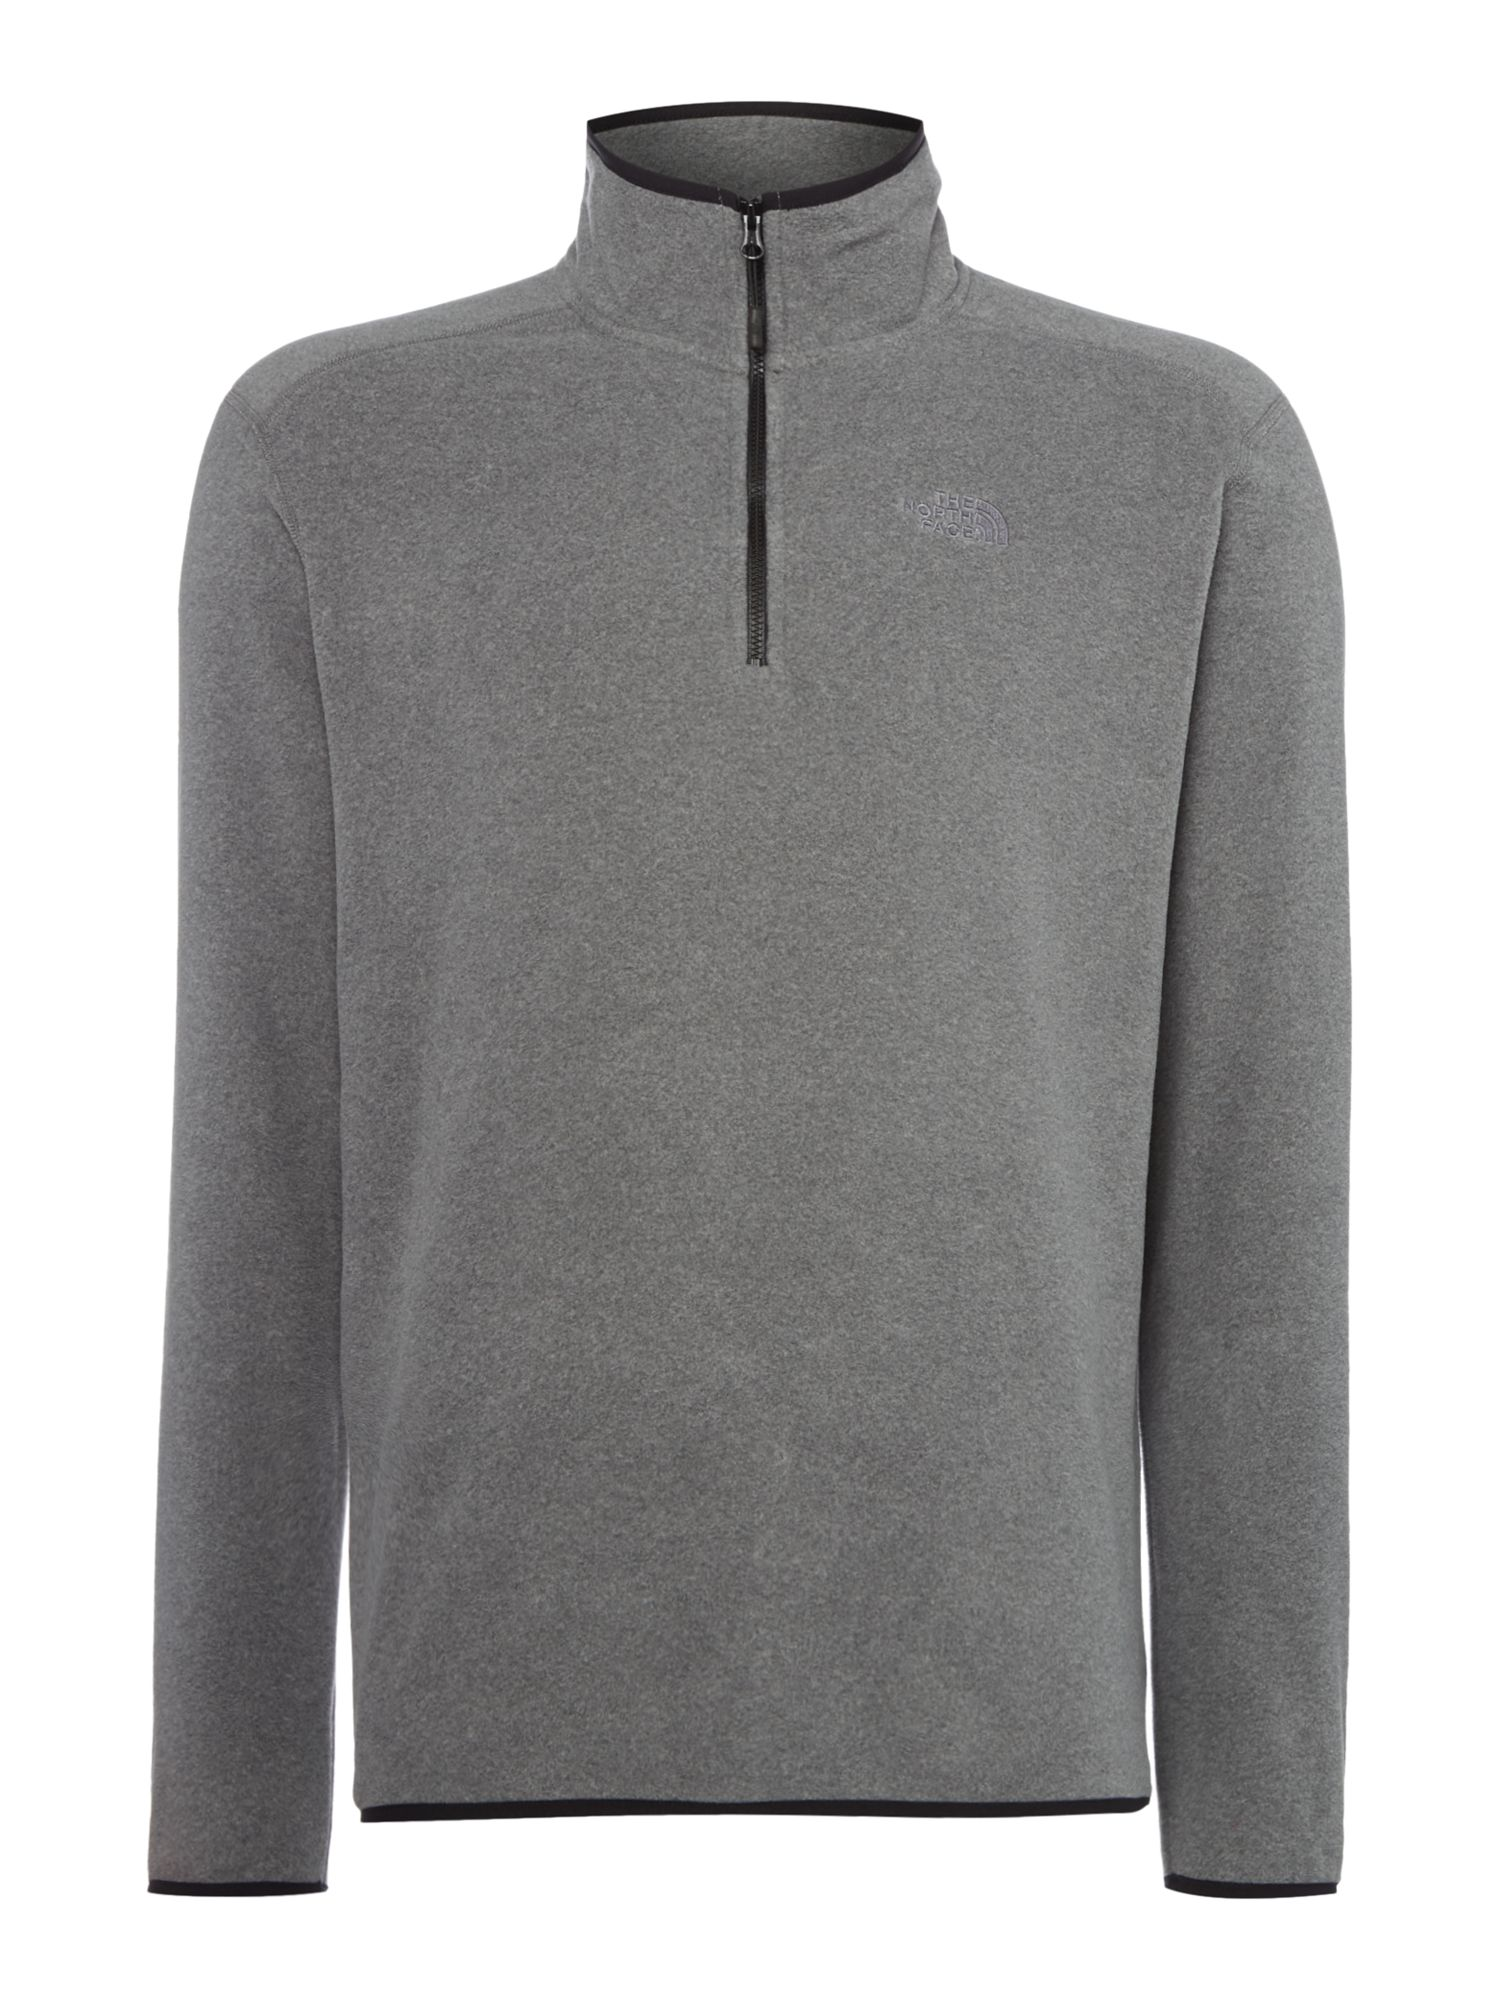 Men's The North Face 100 Glacier 1/4 zip fleece, Grey